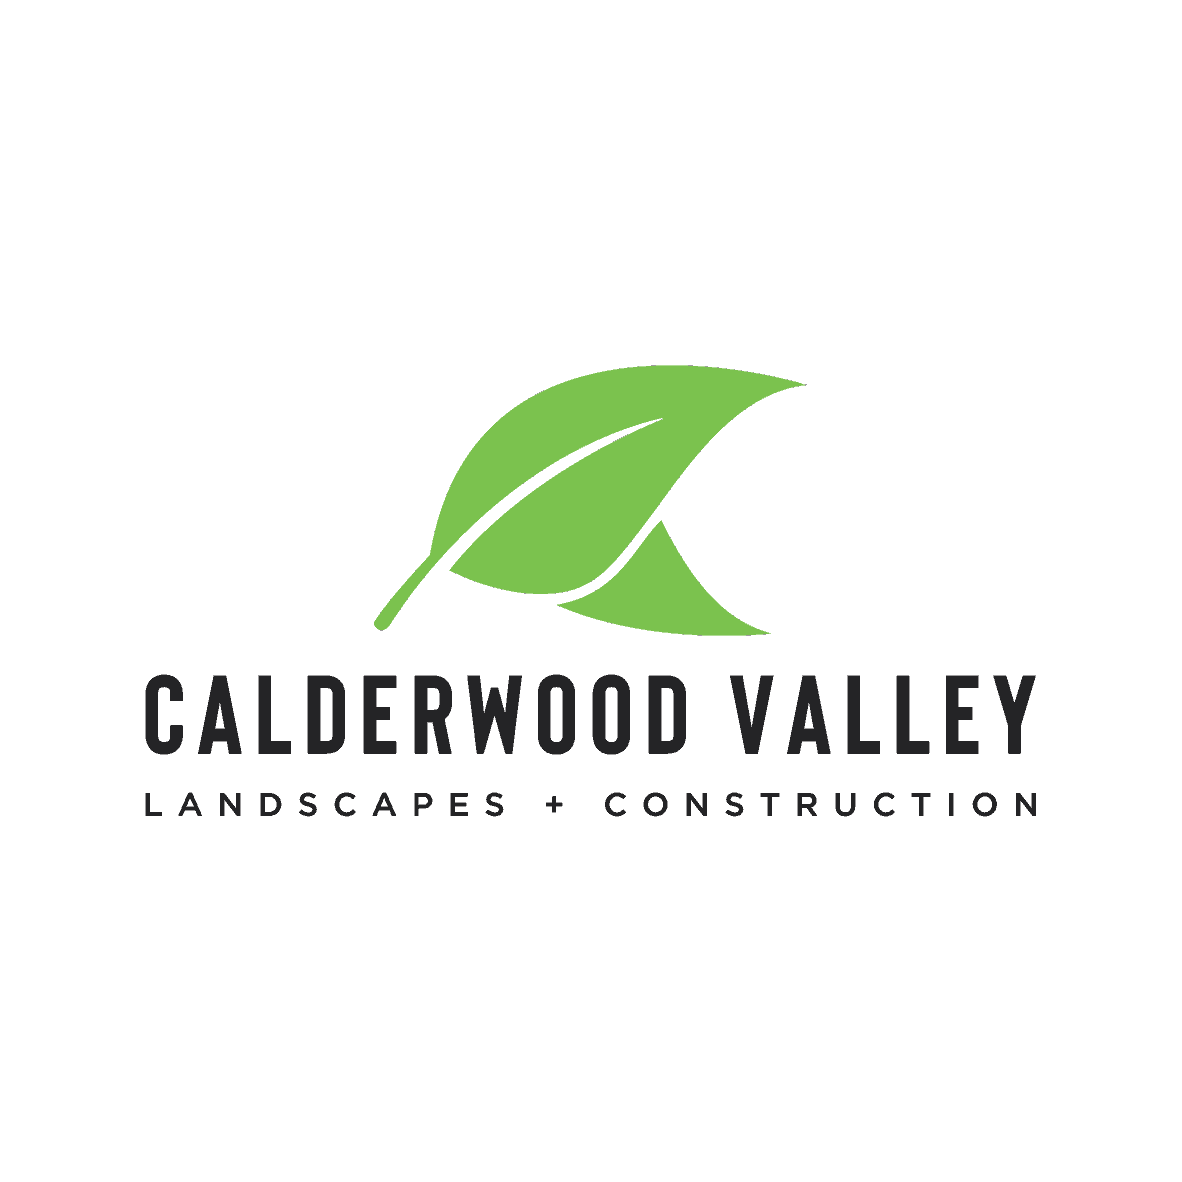 Calderwood Valley Landscapes and Construction - main logo colour